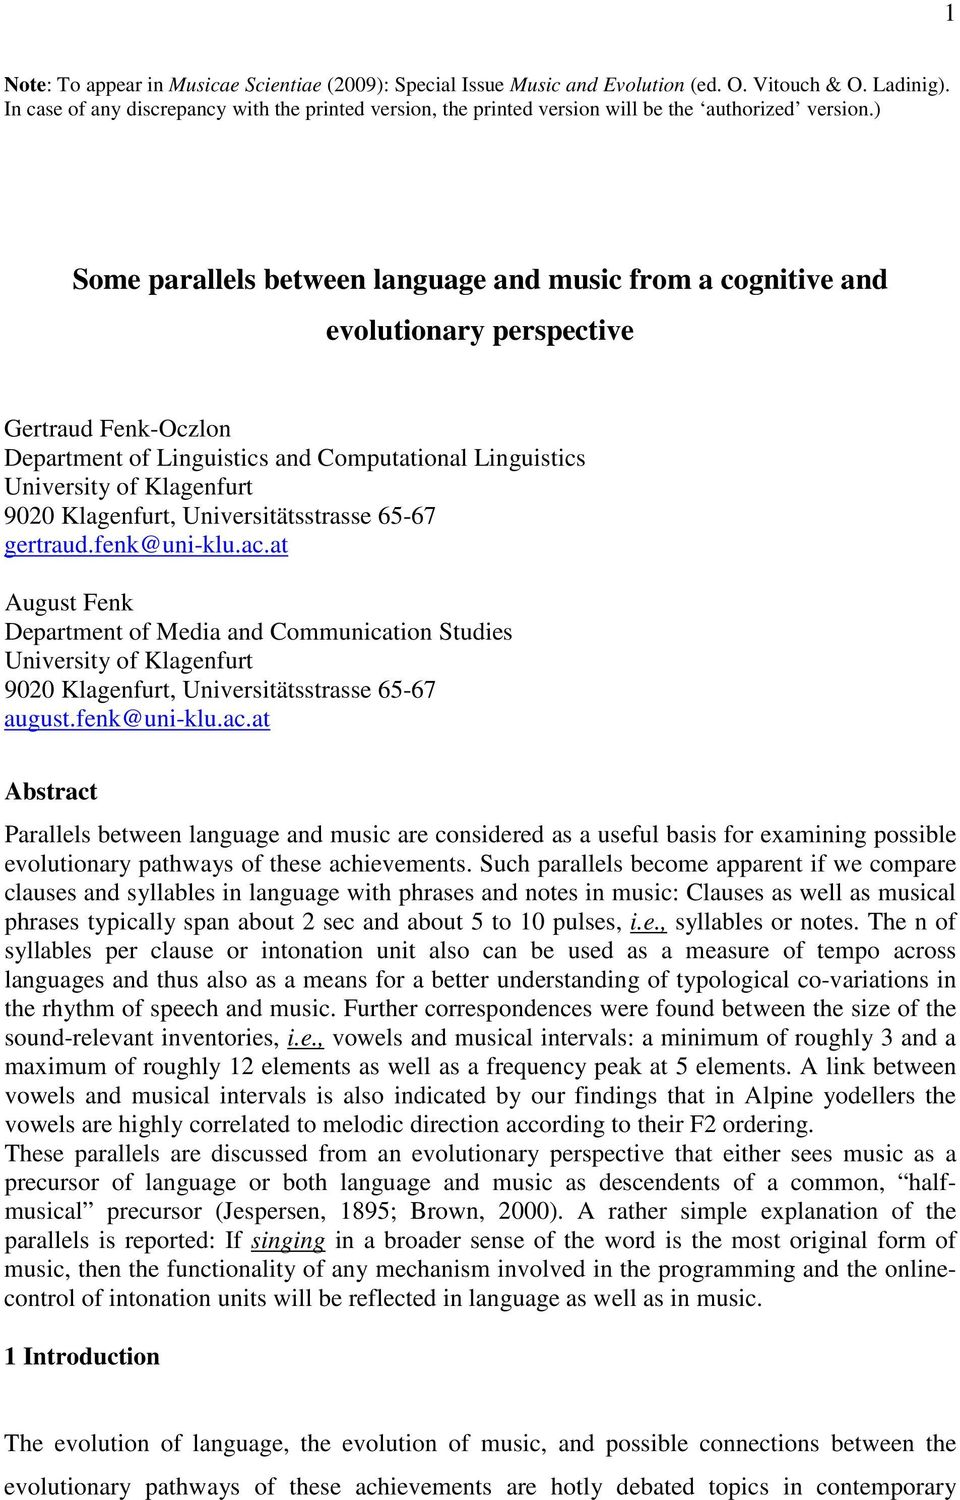 ) Some parallels between language and music from a cognitive and evolutionary perspective Gertraud Fenk-Oczlon Department of Linguistics and Computational Linguistics University of Klagenfurt 9020